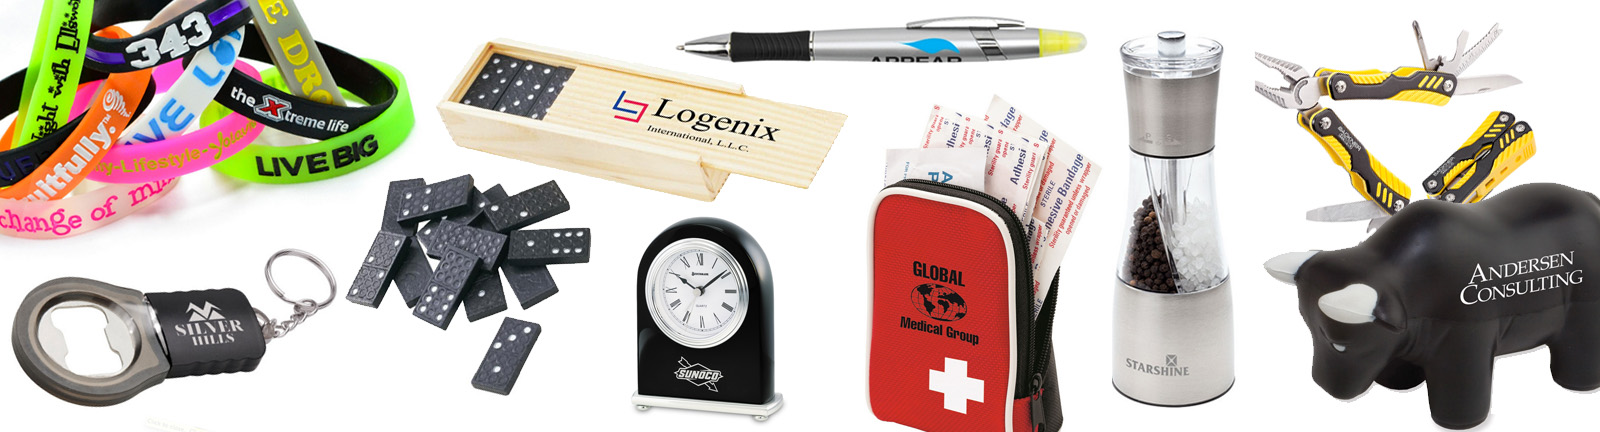 a display of various Promotional Products